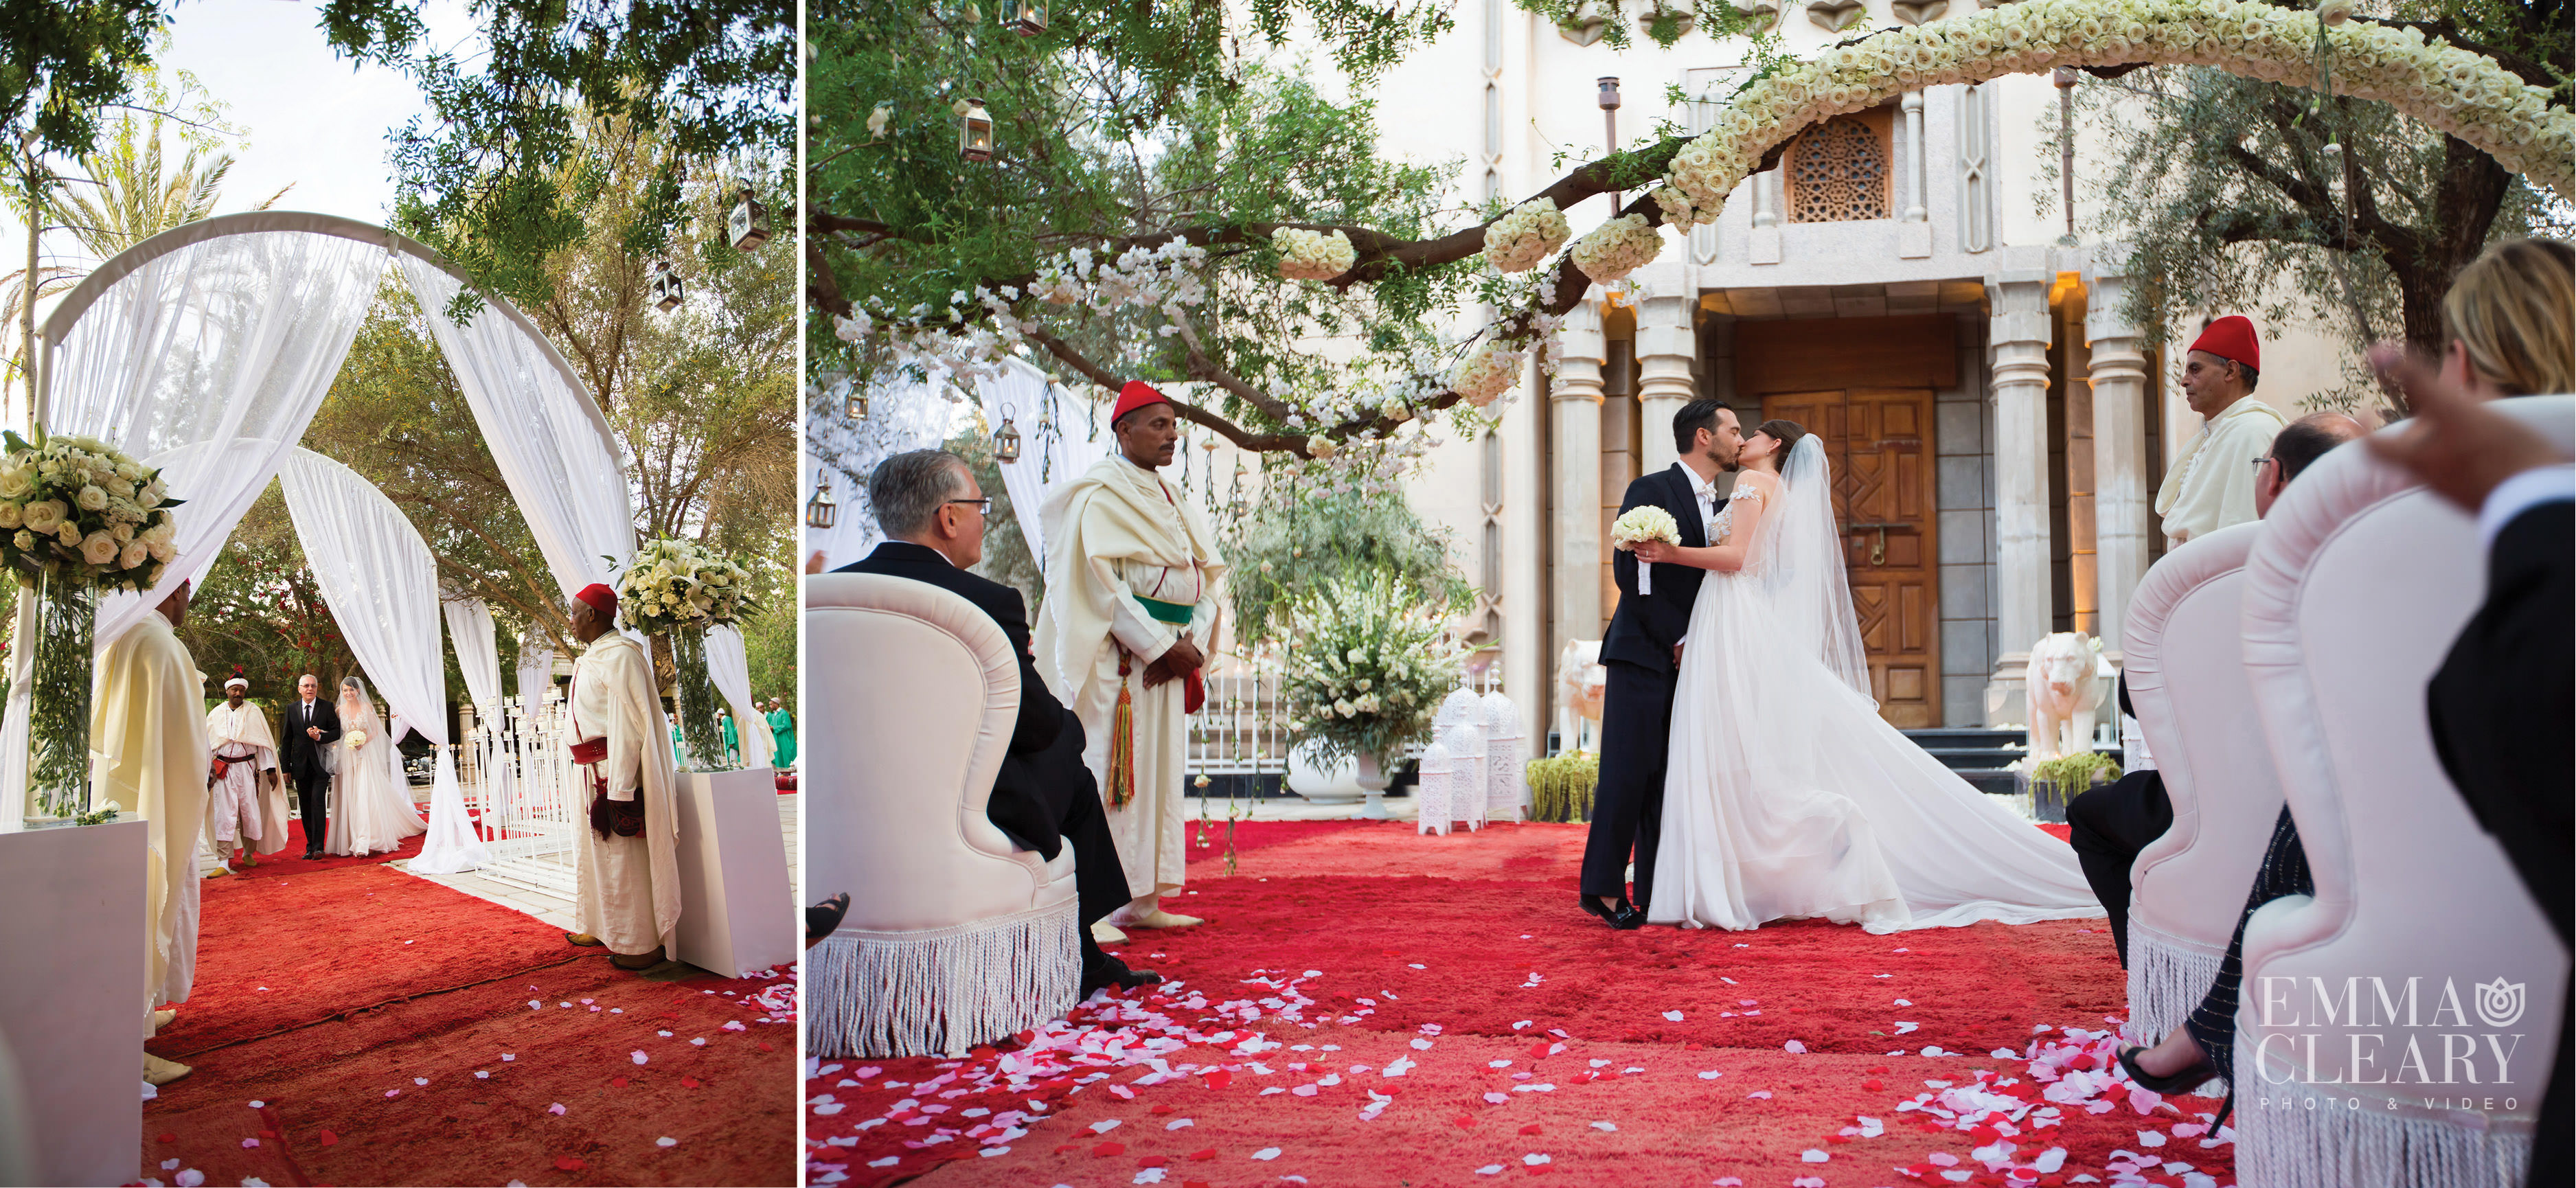 Emma_cleary_photography Destination Wedding Morrocco13